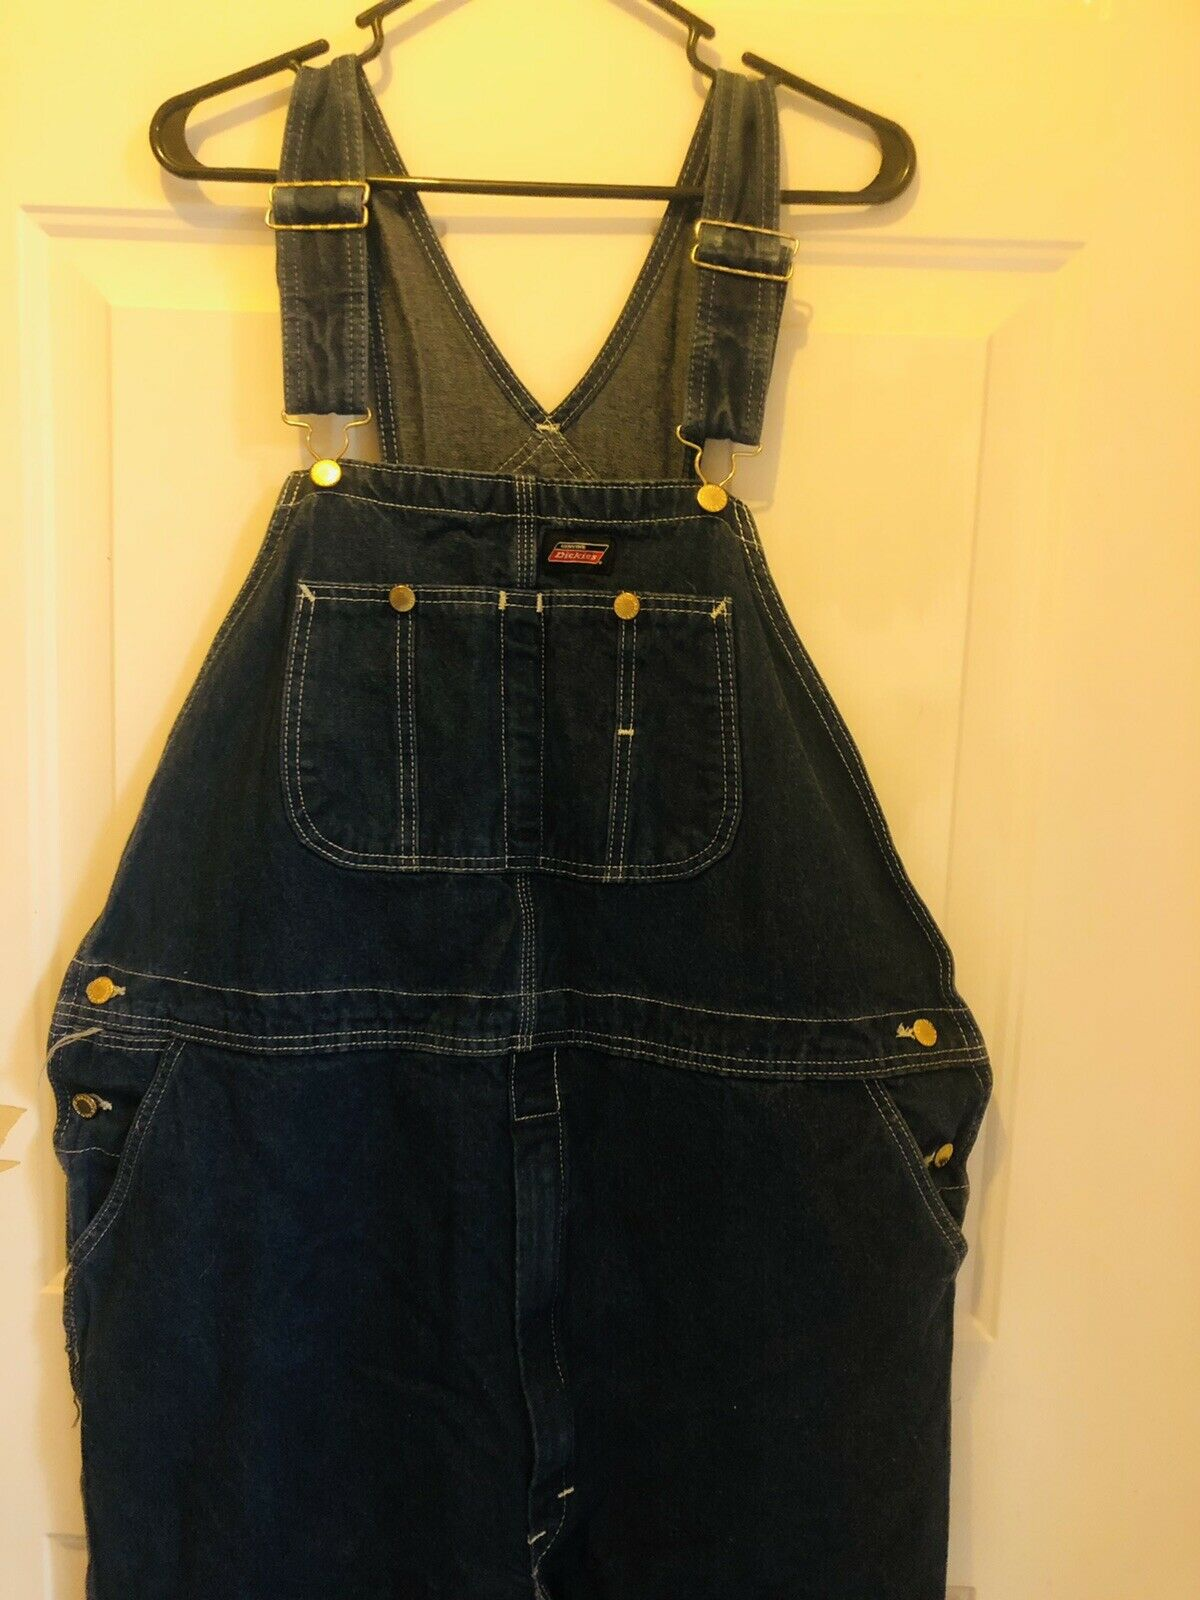 Dickies Jeans  Bib Overalls Size 42x32 - image 1